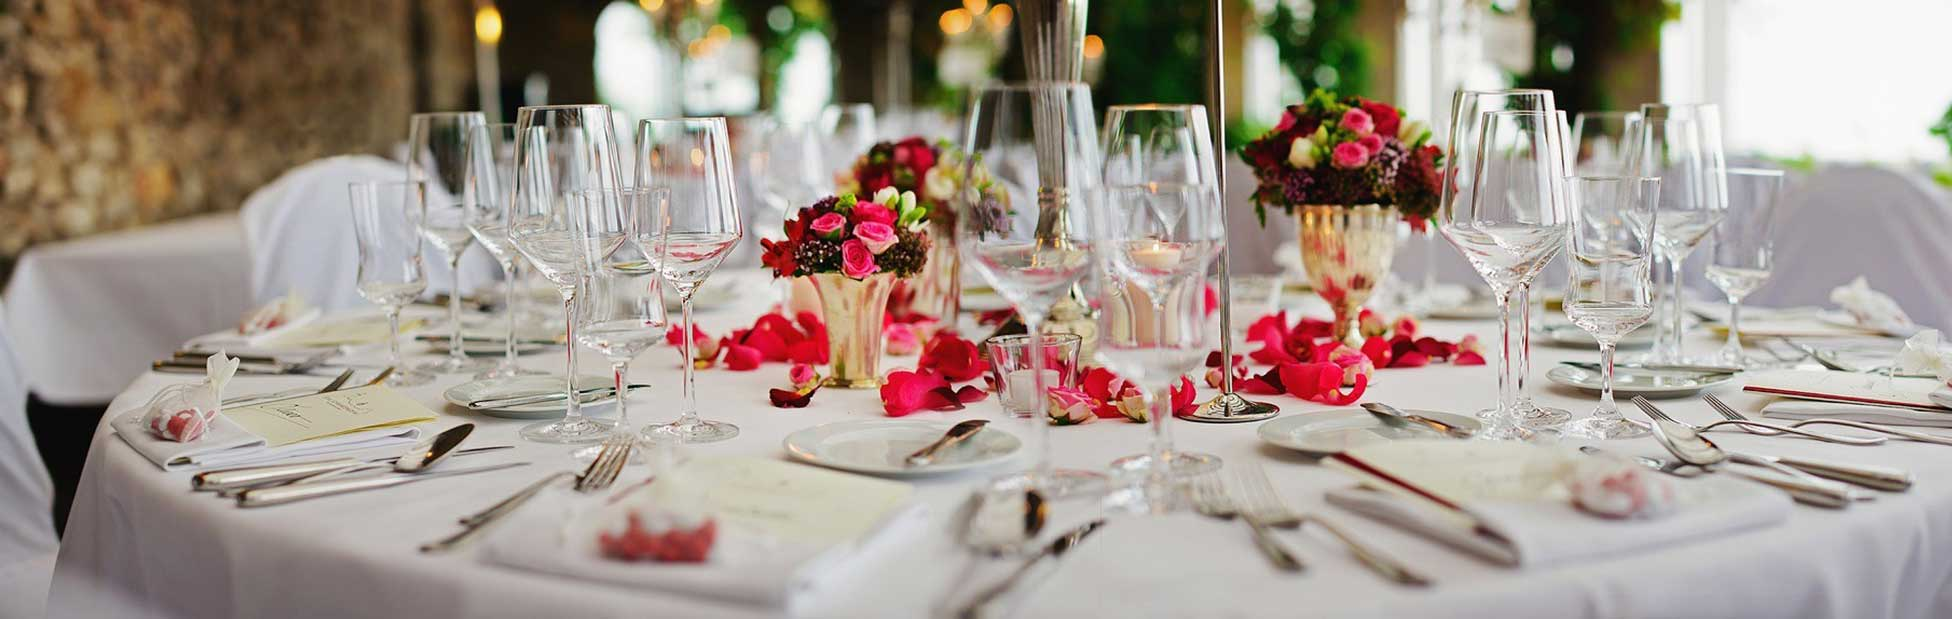 Wedding table set and decorated